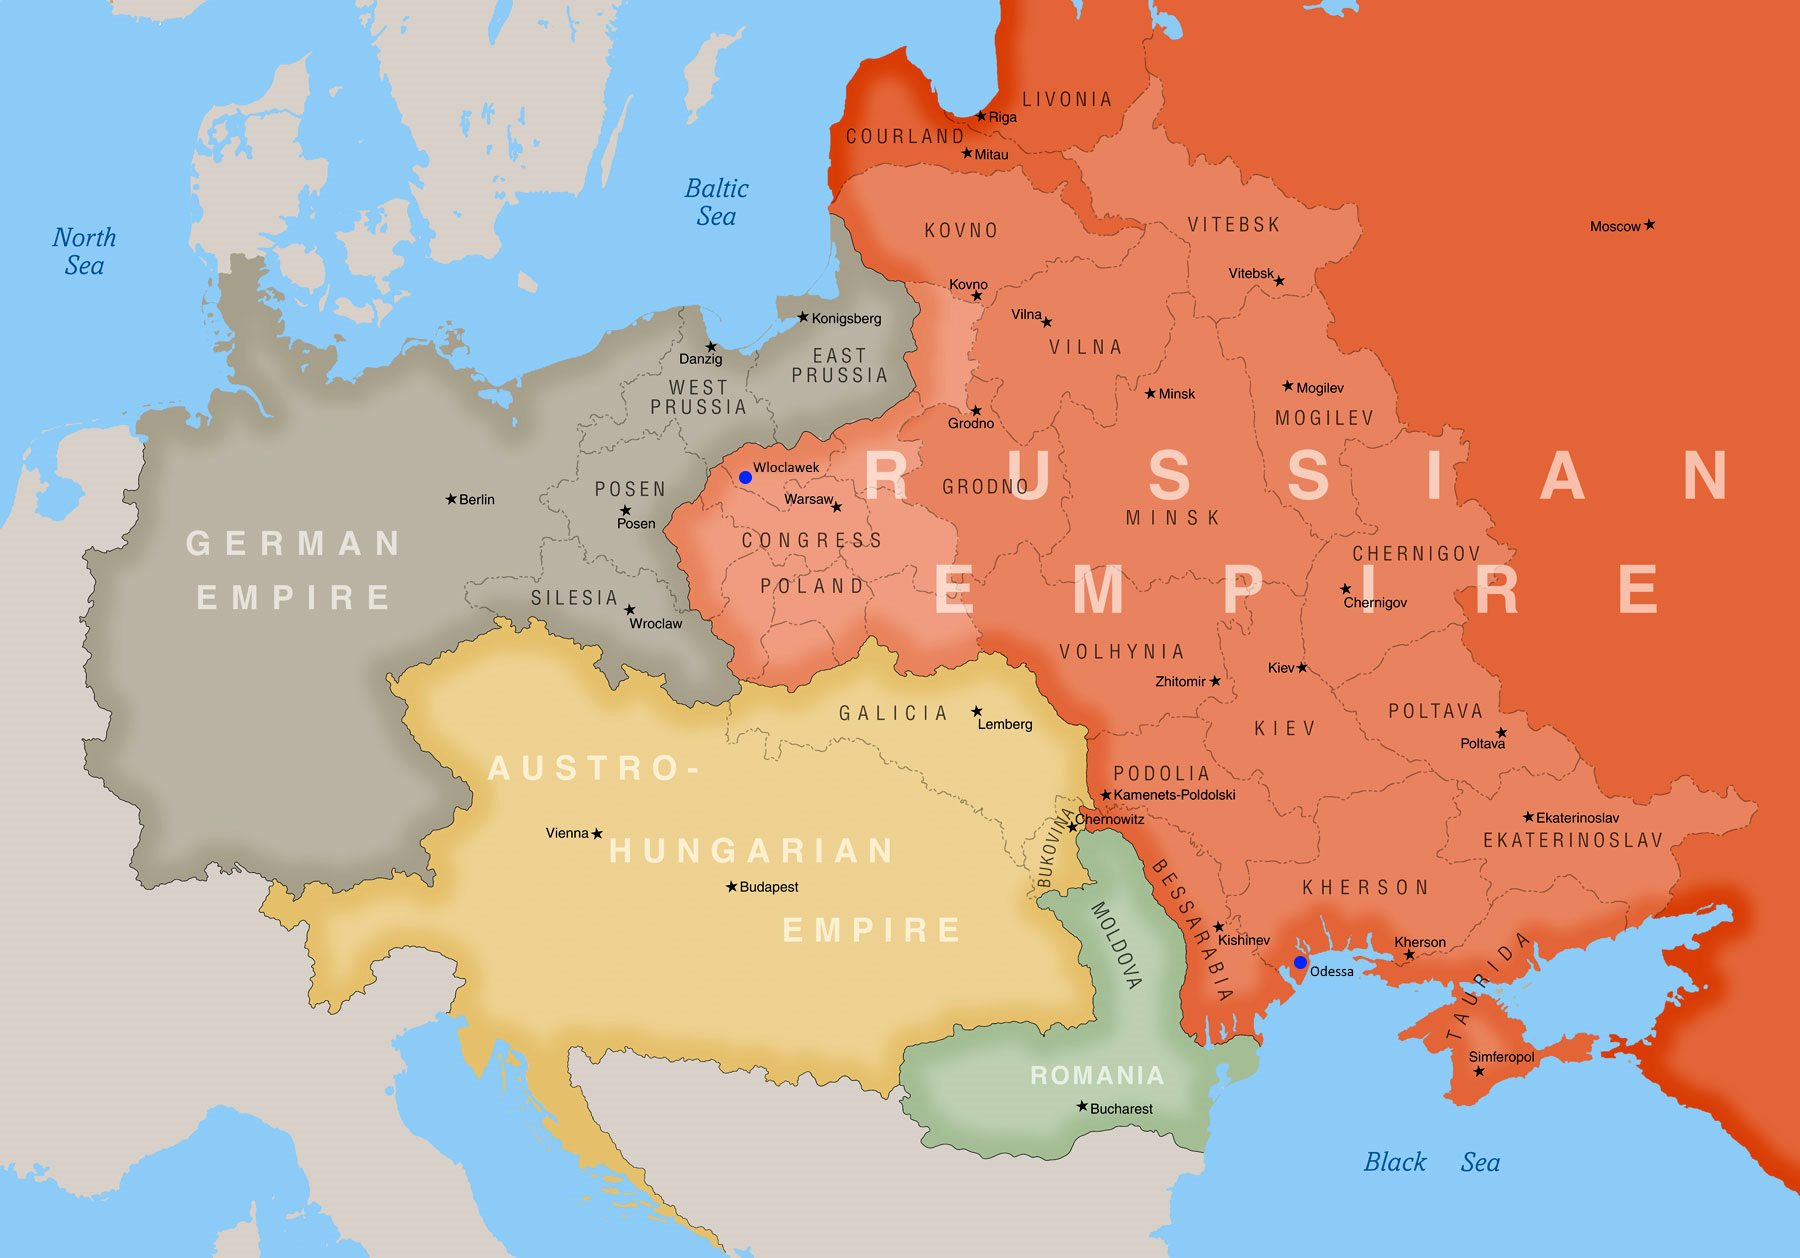 Central & Eastern Europe 1900